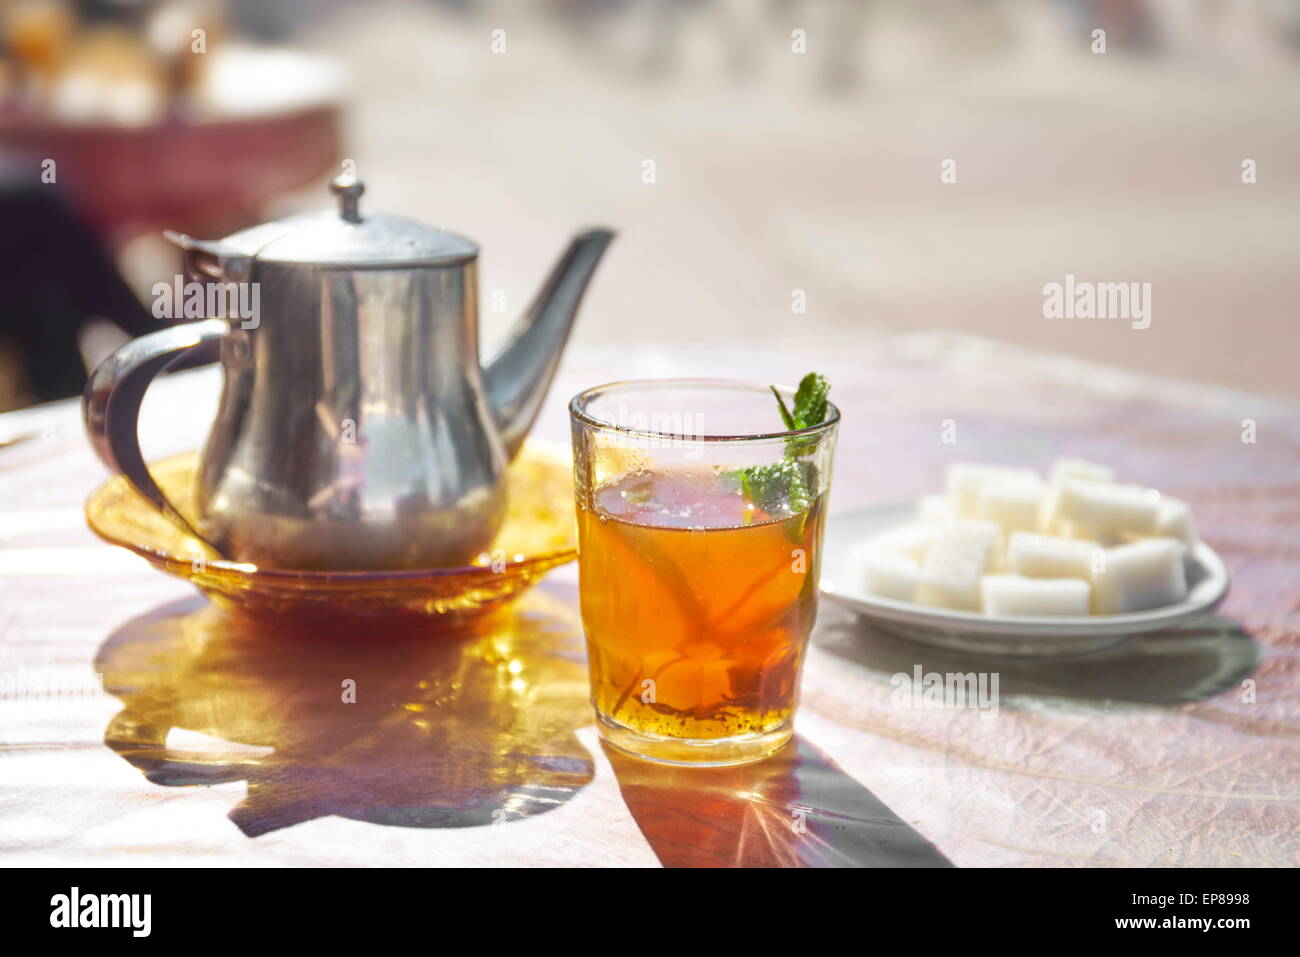 Traditional mint tea. Morocco, Africa - Stock Image